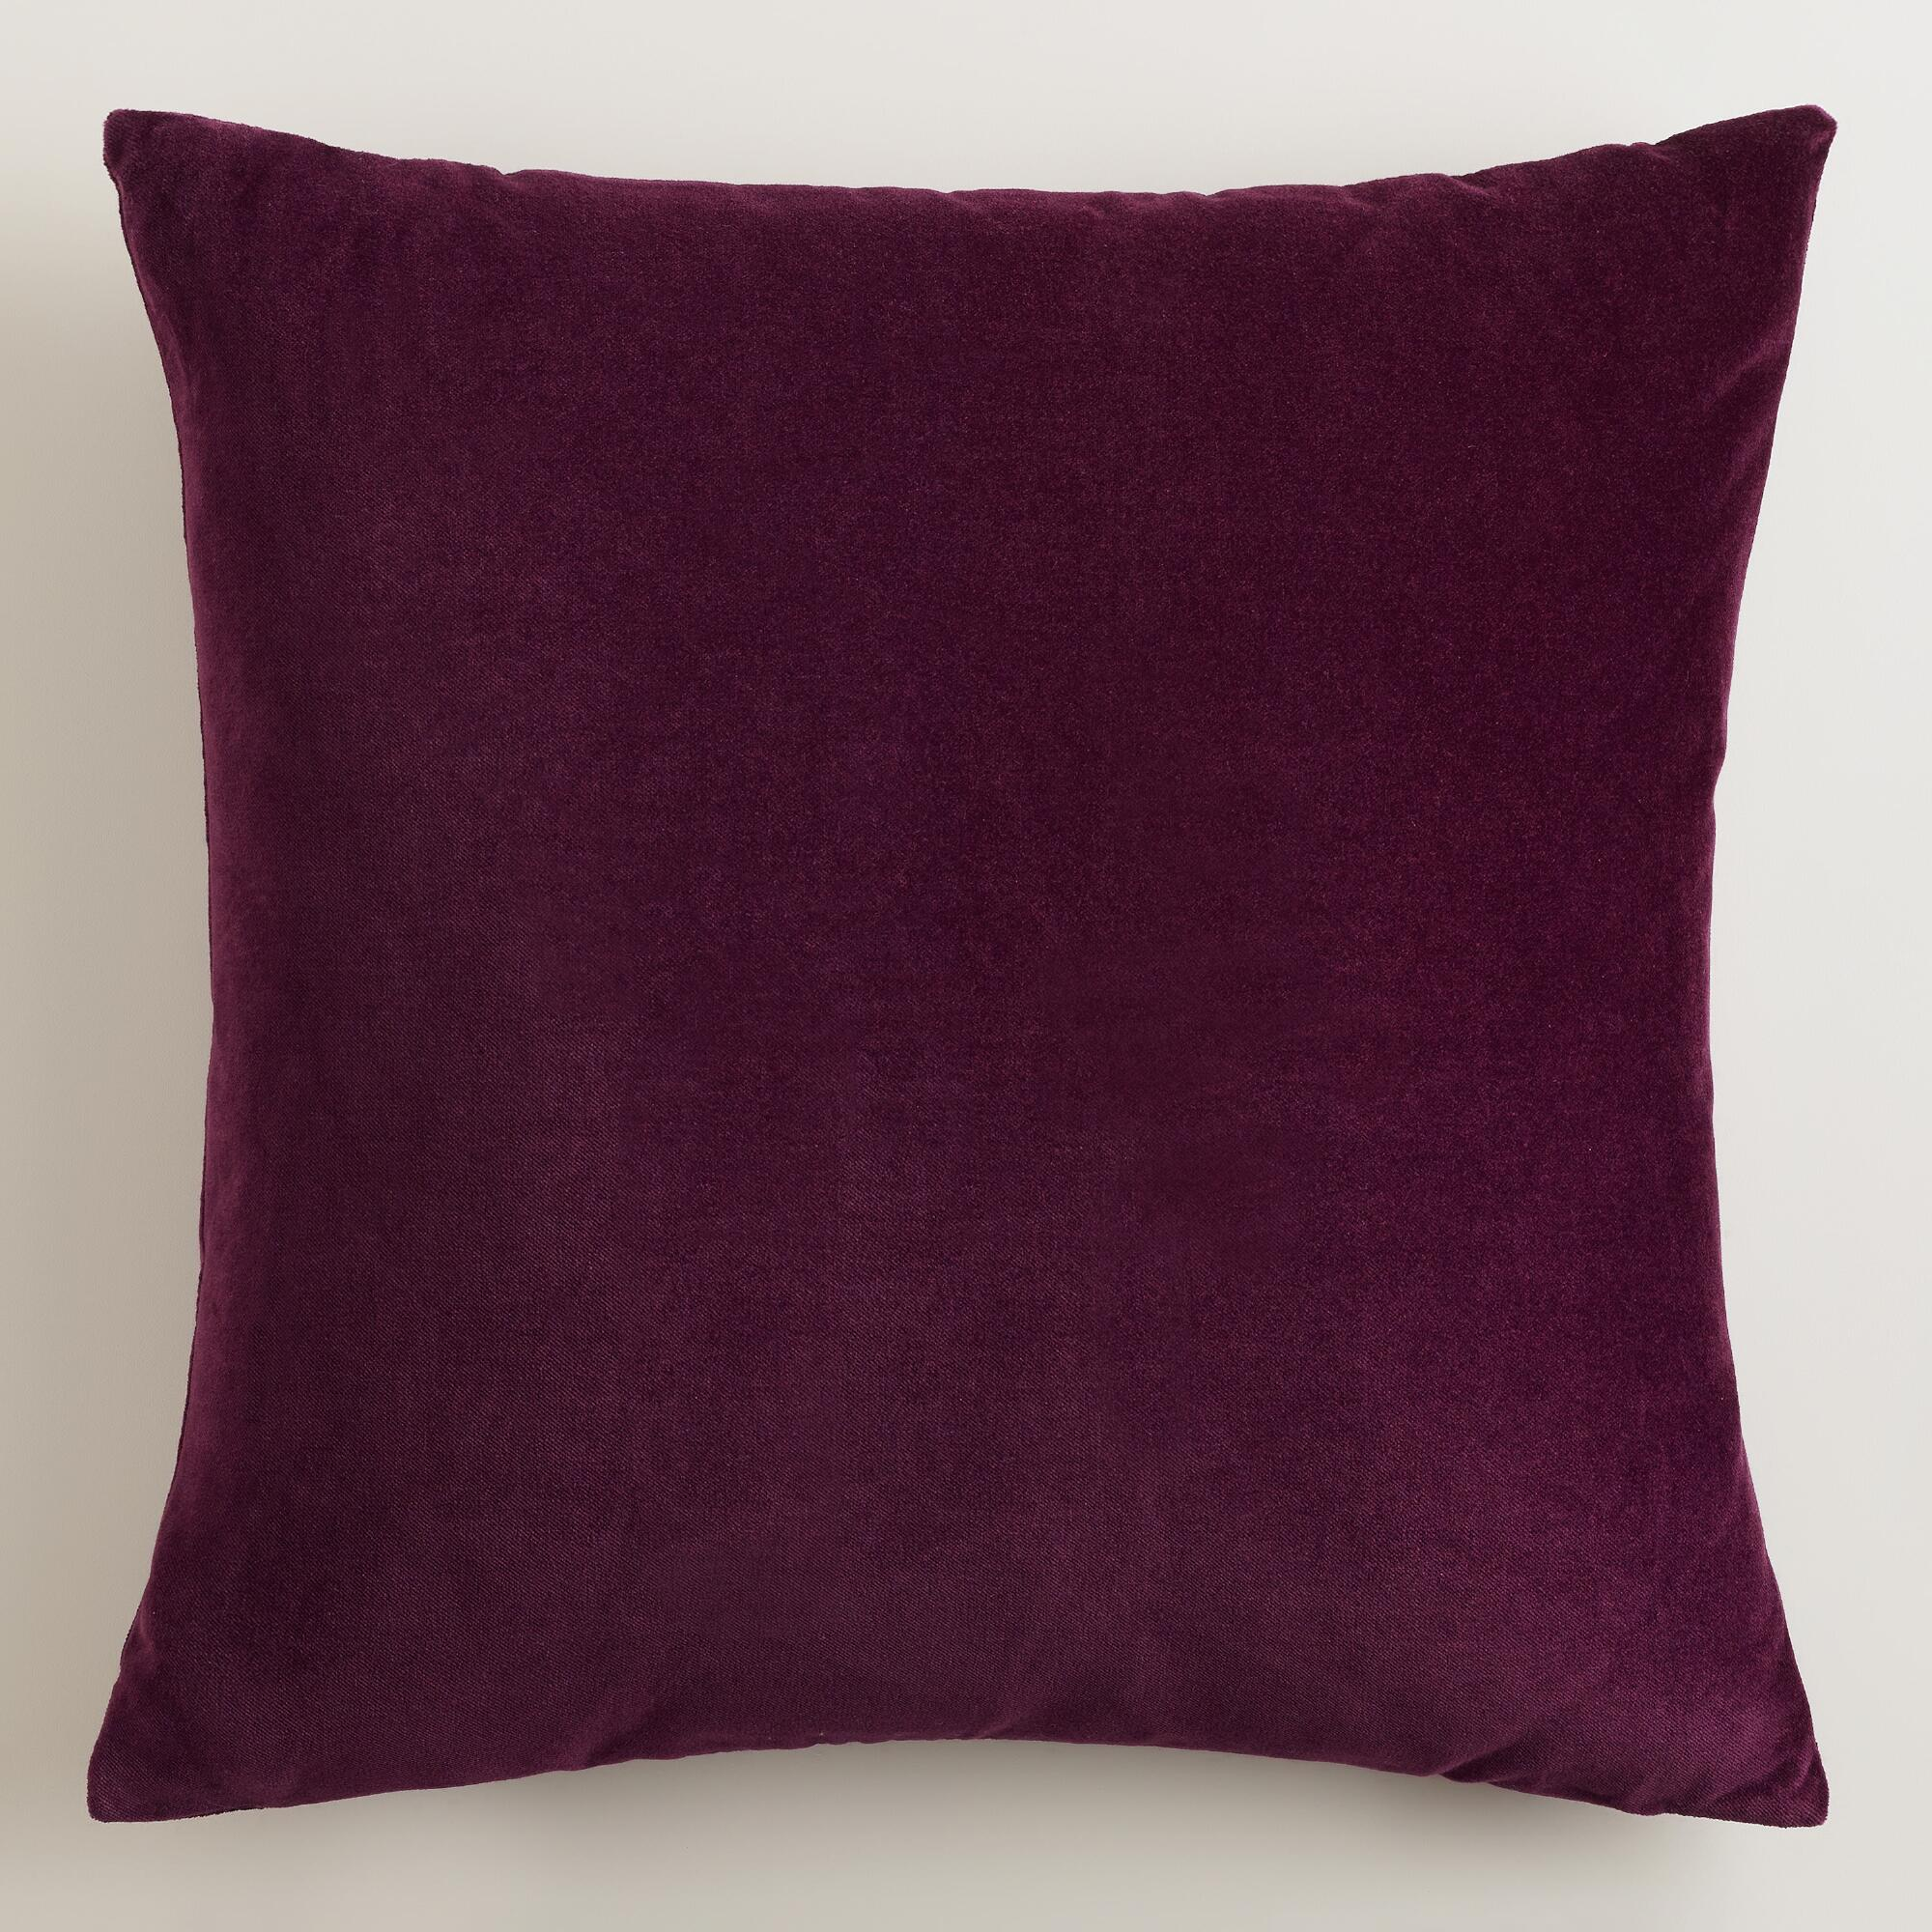 Lavender Velvet Throw Pillow : Potent Purple Velvet Throw Pillows World Market